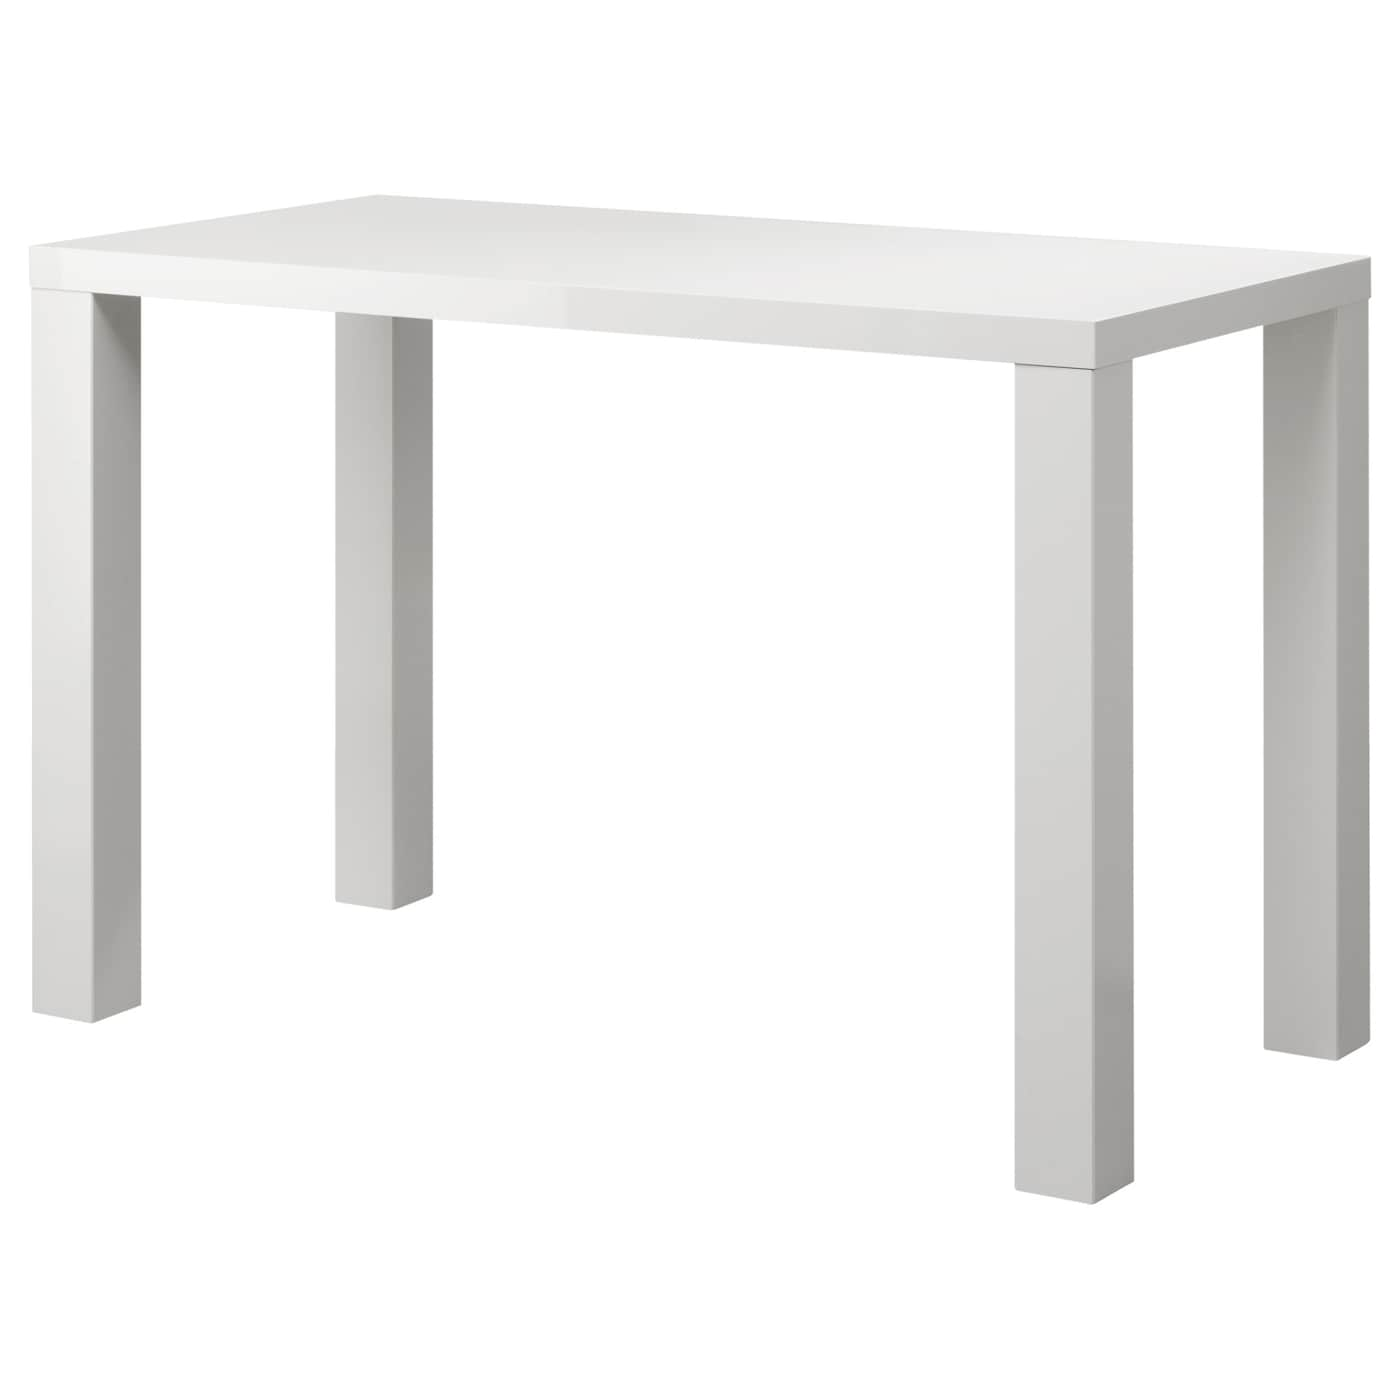 Exceptional IKEA TORESUND Bar Table